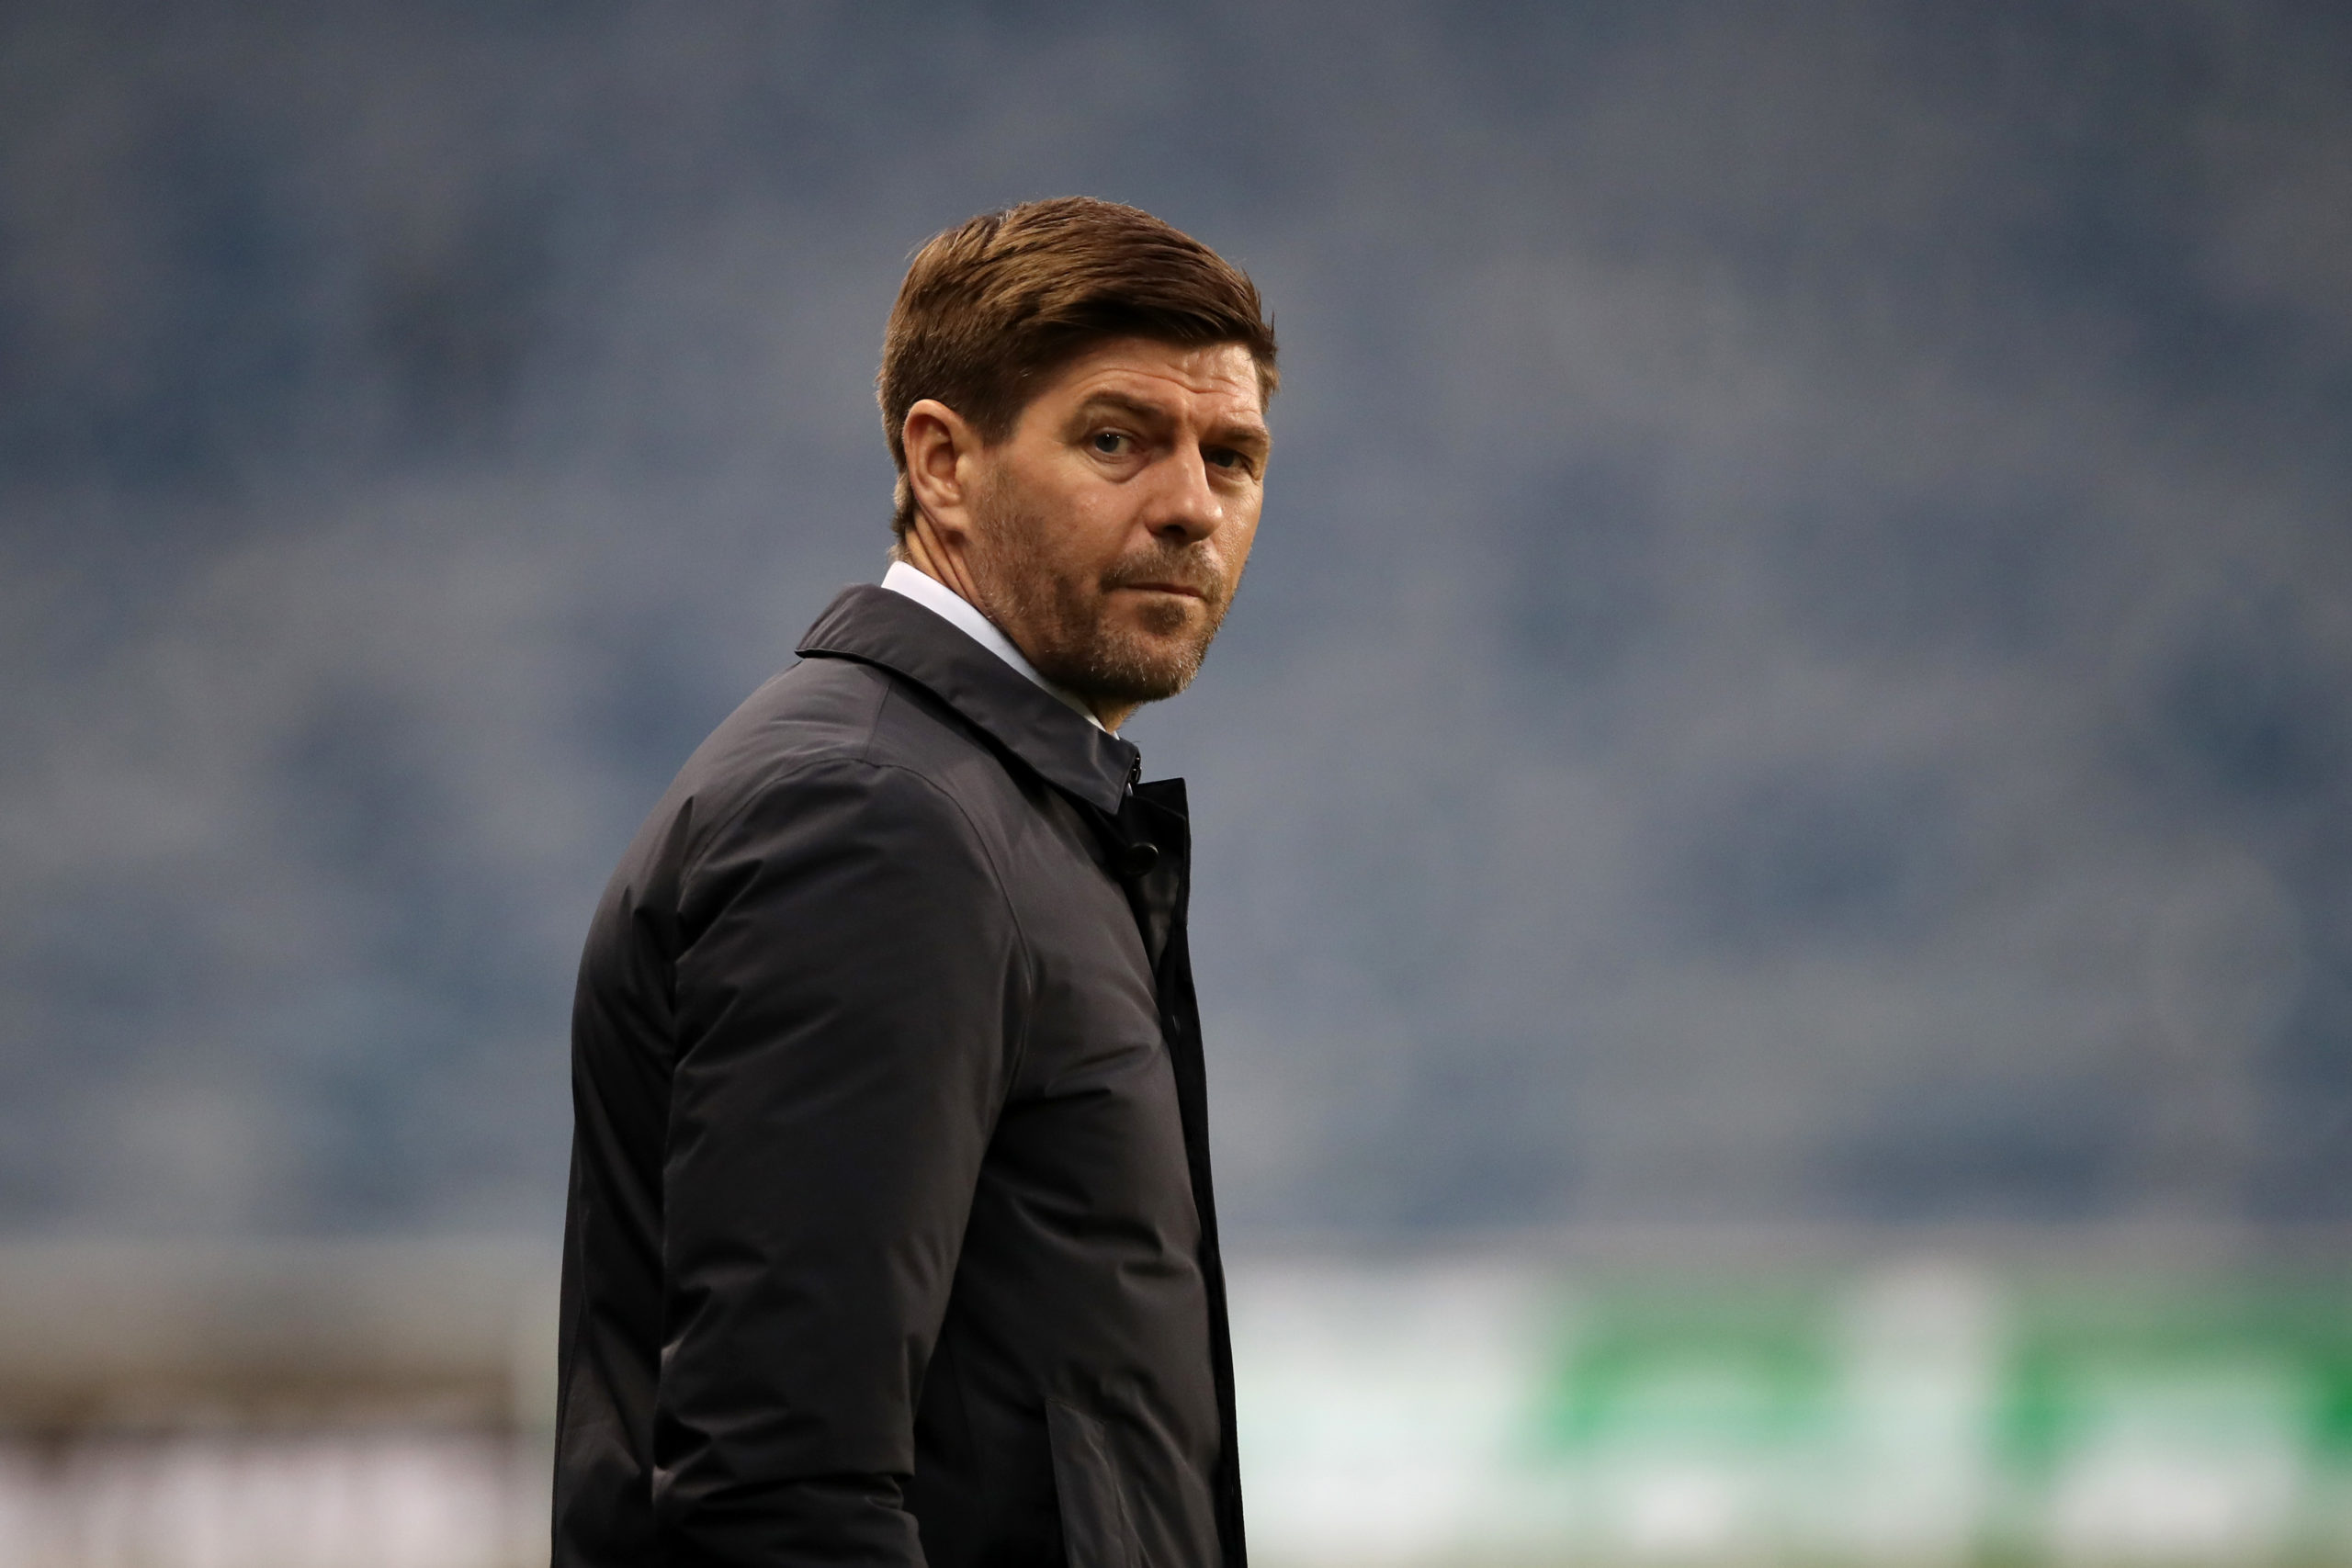 Steven Gerrard's Nathan Patterson excuse was cringeworthy